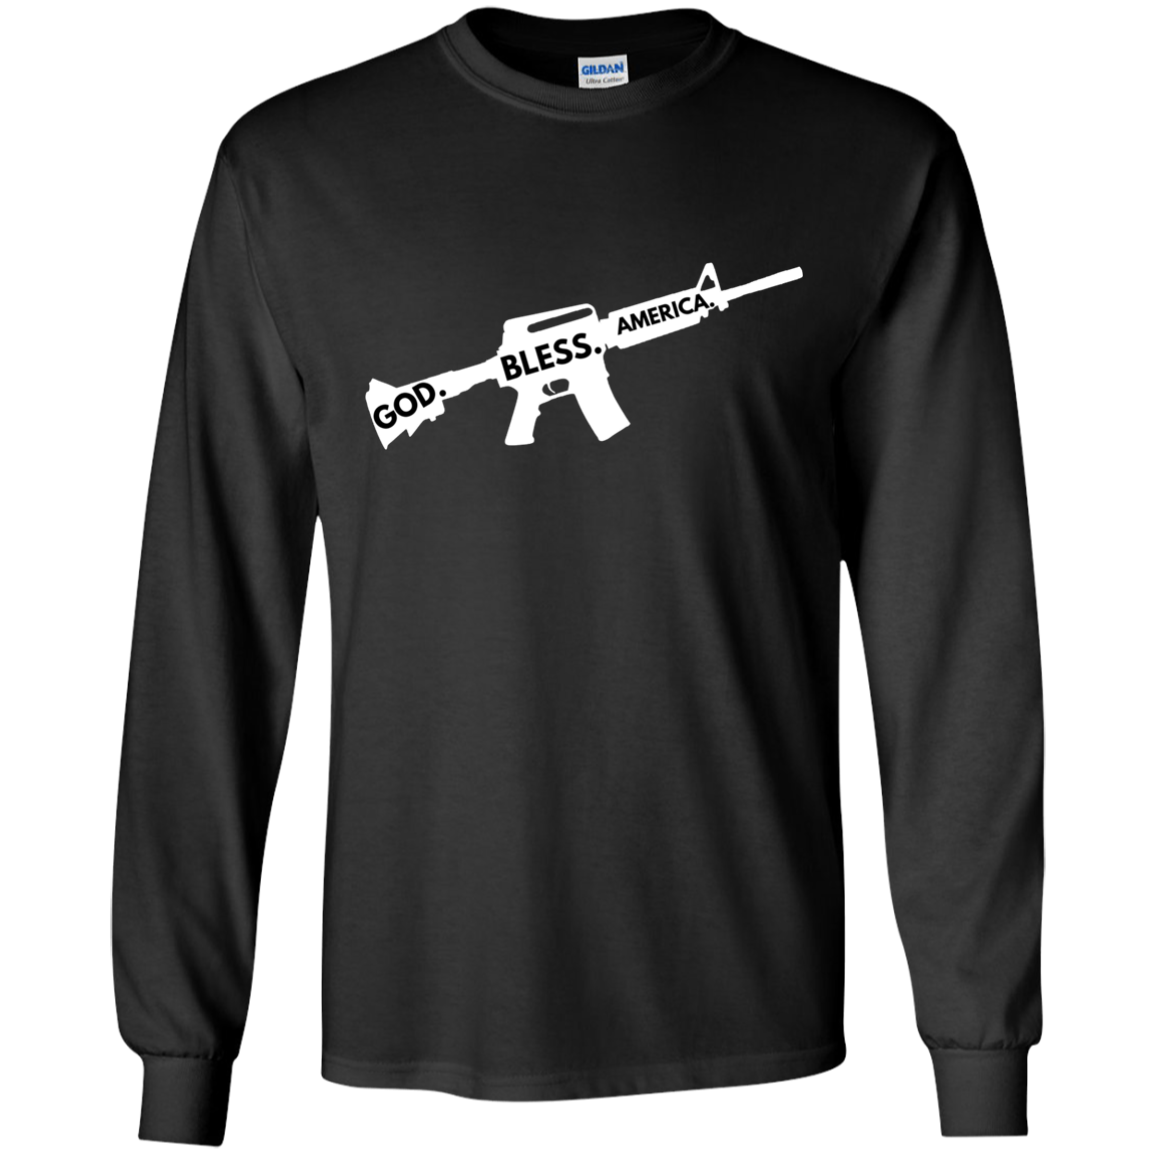 God. Bless. America. - M16 Apparel